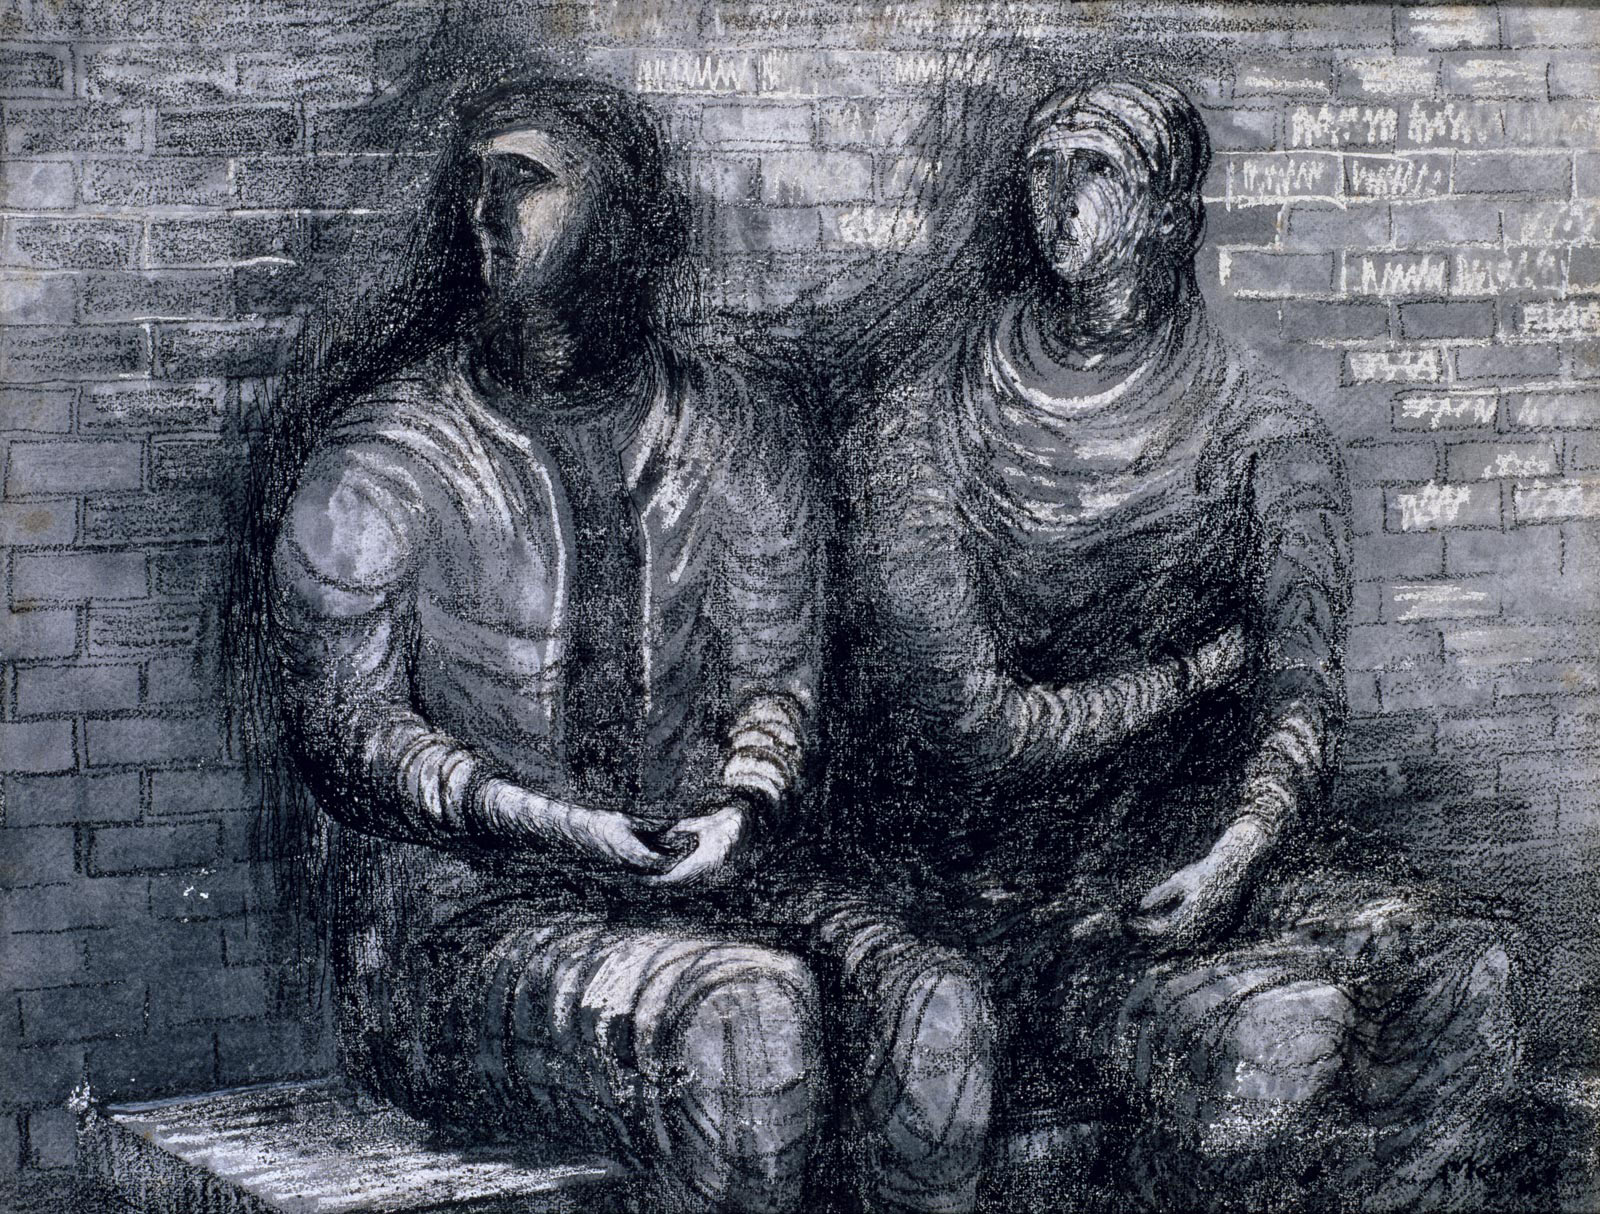 A black and white drawing showing two people huddled together on a bench looking worriedly towards picture left